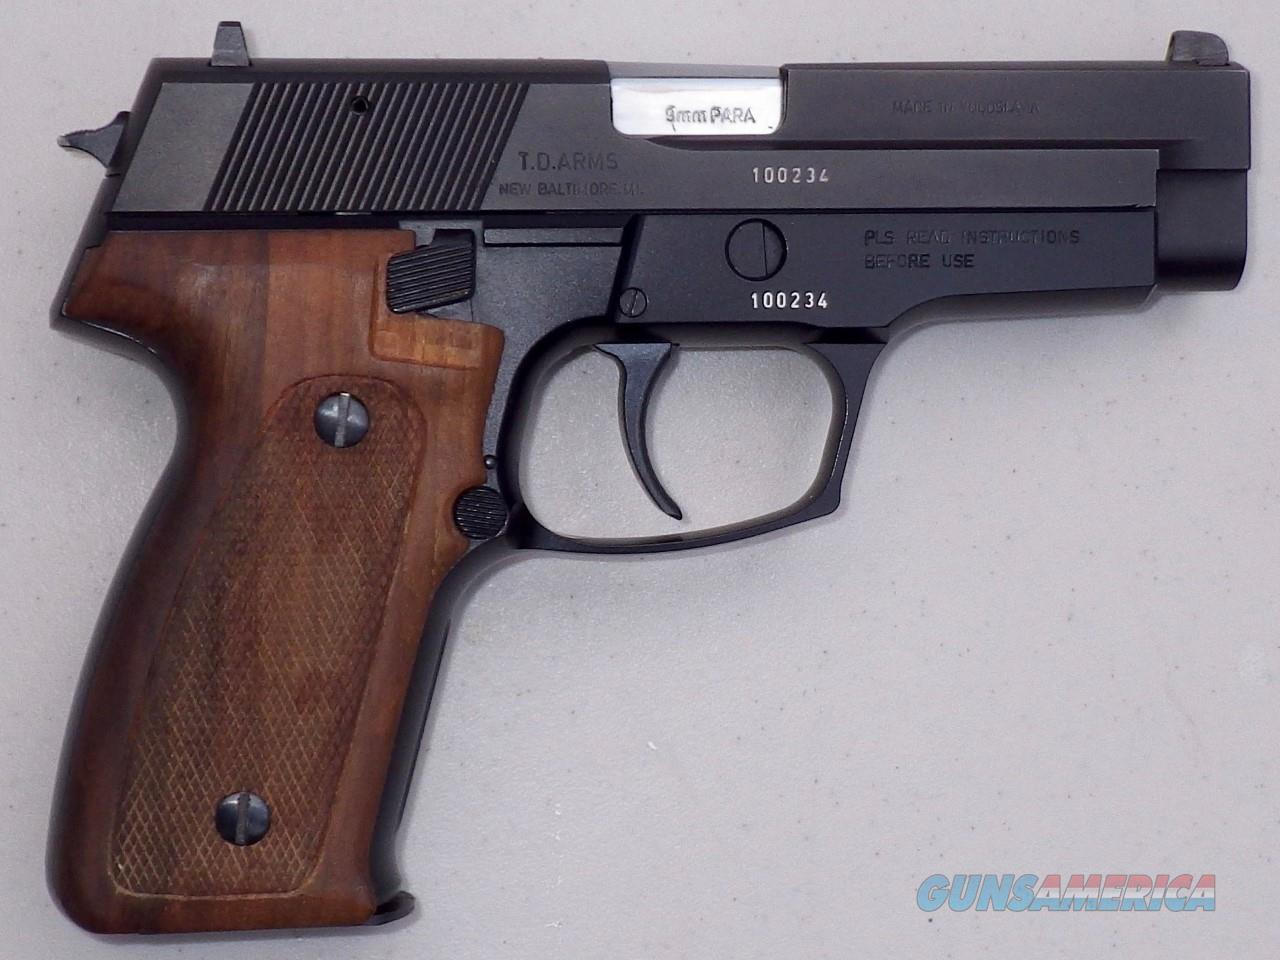 Zastava / CZ 99 9mm NIB circa 1991, two 15-round mags, matte slide, wood grips, consecutive serialed sets available  Guns > Pistols > Zastava Arms